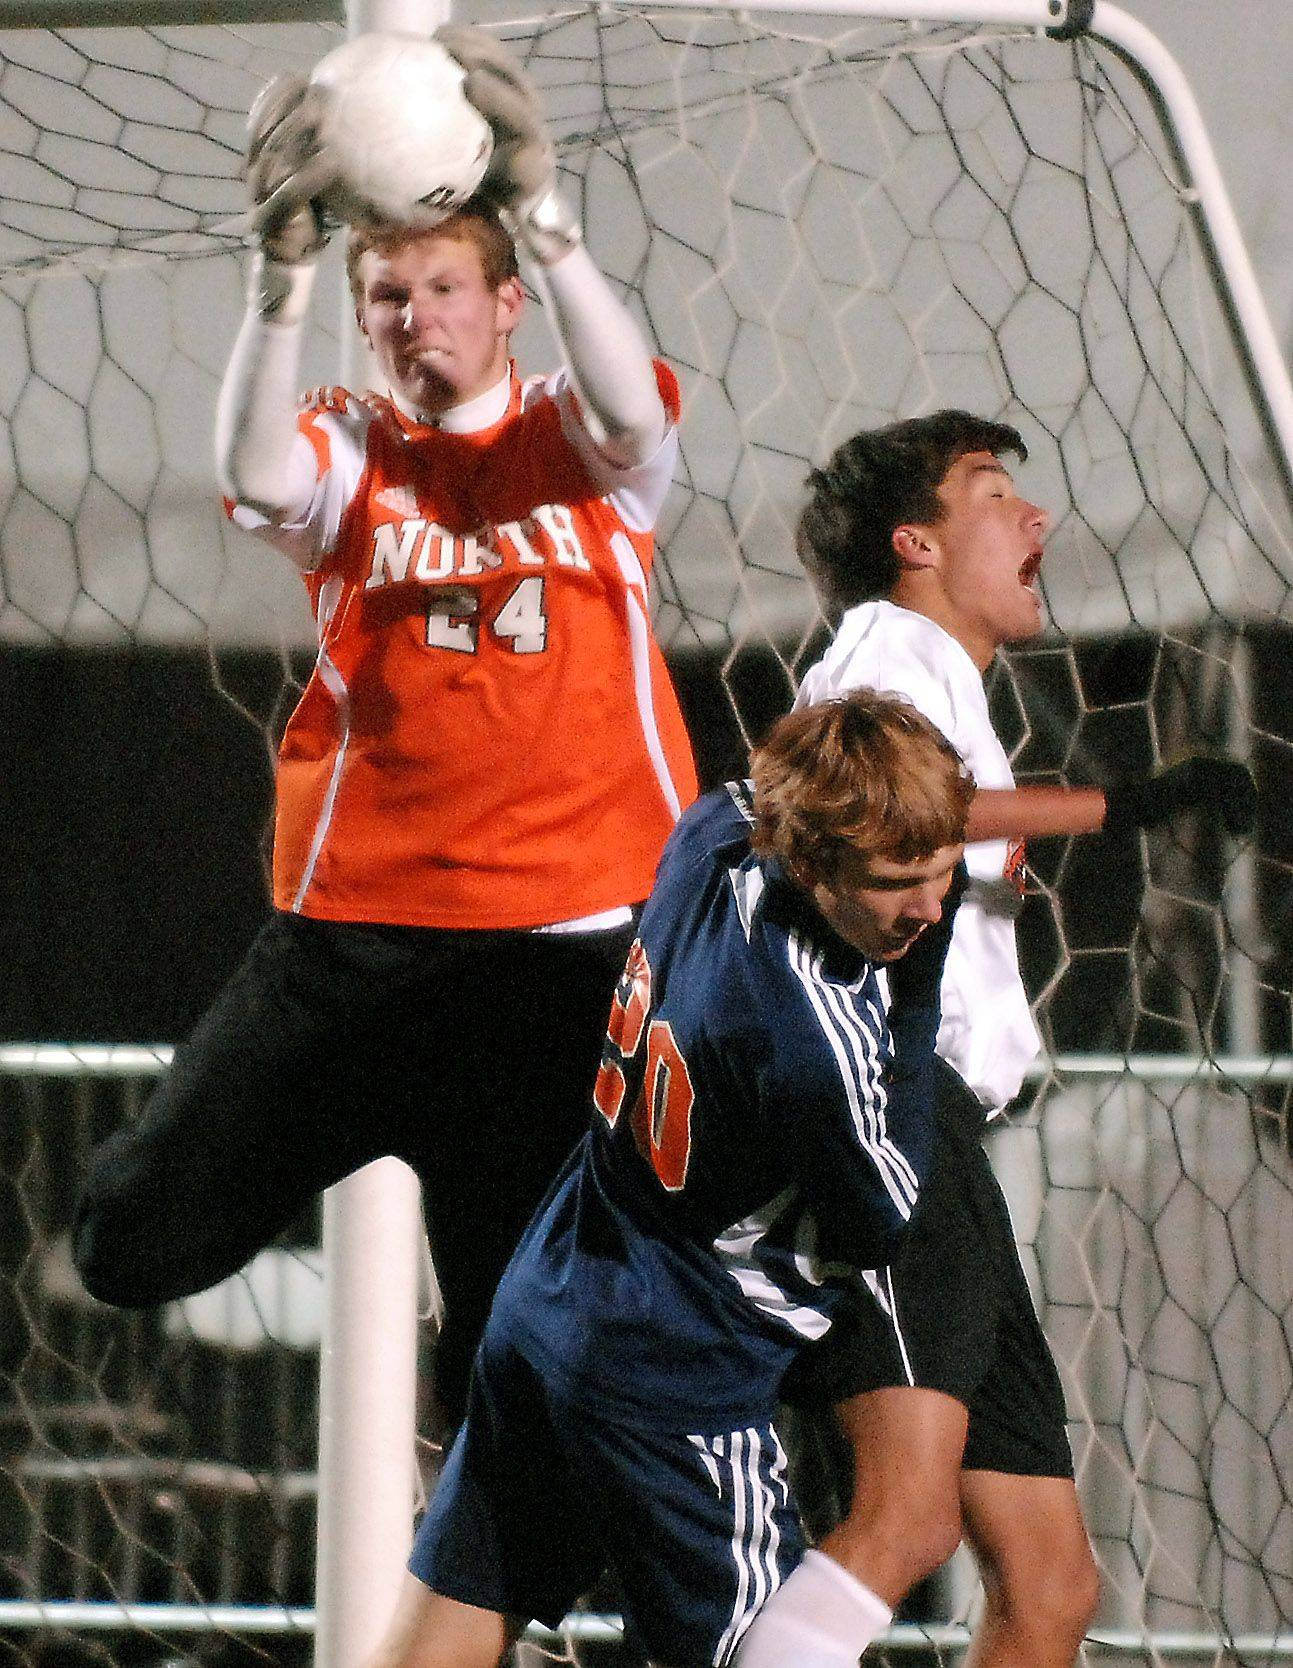 Naperville North goalkeeper Kevin Anderson wins a crossed ball during Friday's 3A state soccer semifinals at North Central College in Naperville.